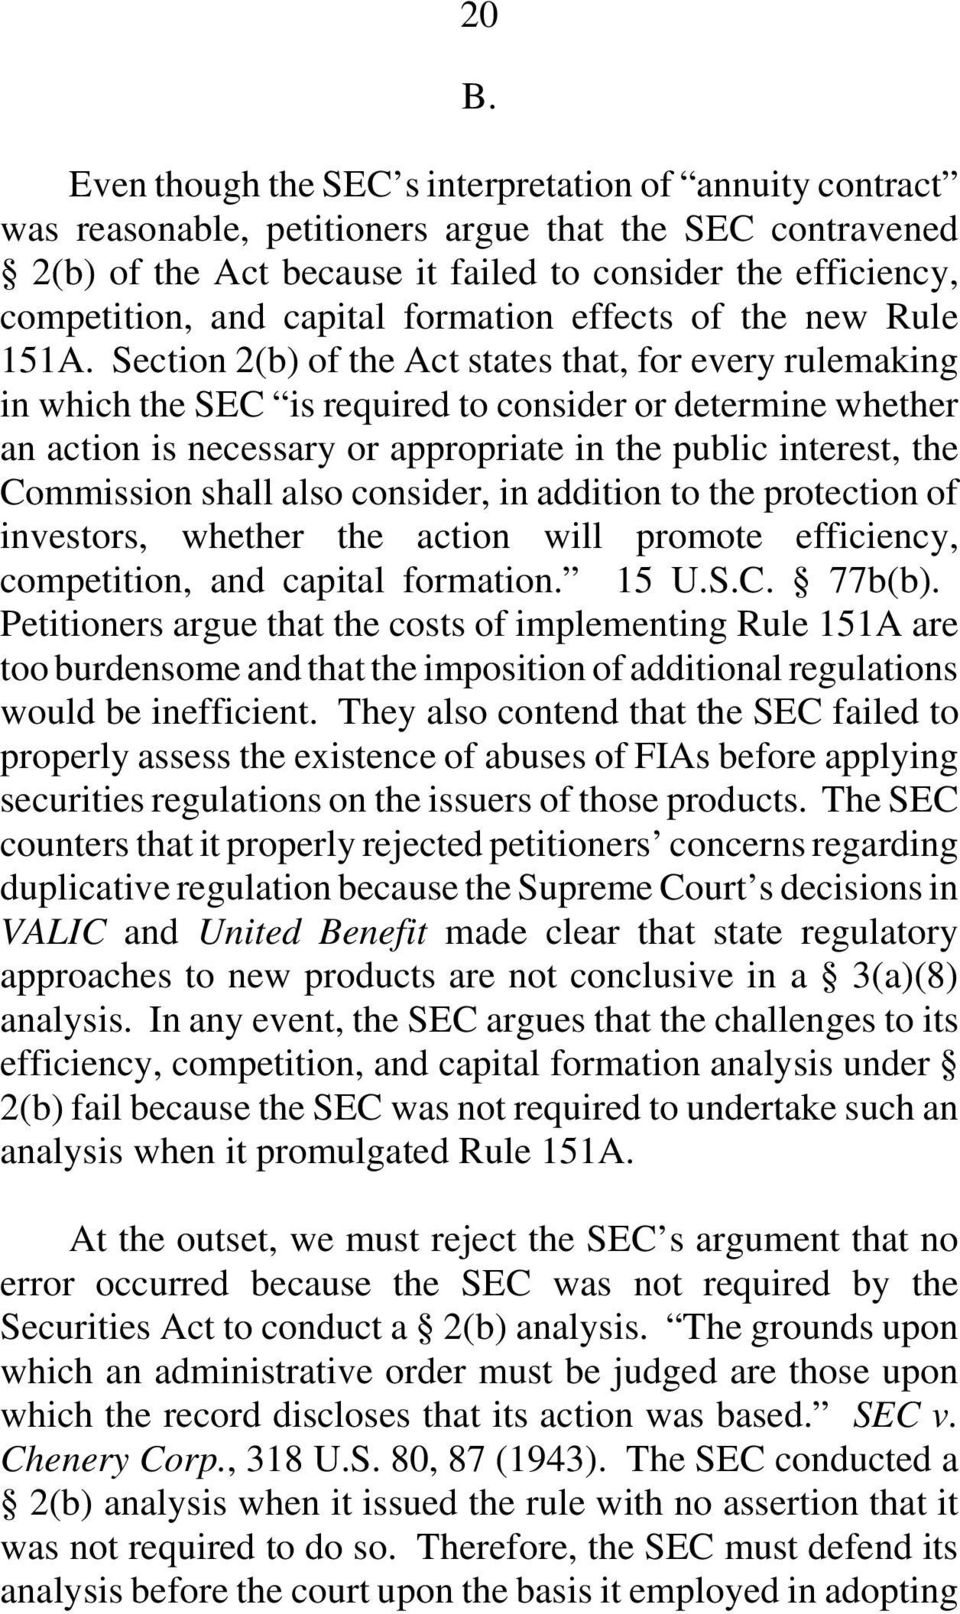 Section 2(b) of the Act states that, for every rulemaking in which the SEC is required to consider or determine whether an action is necessary or appropriate in the public interest, the Commission